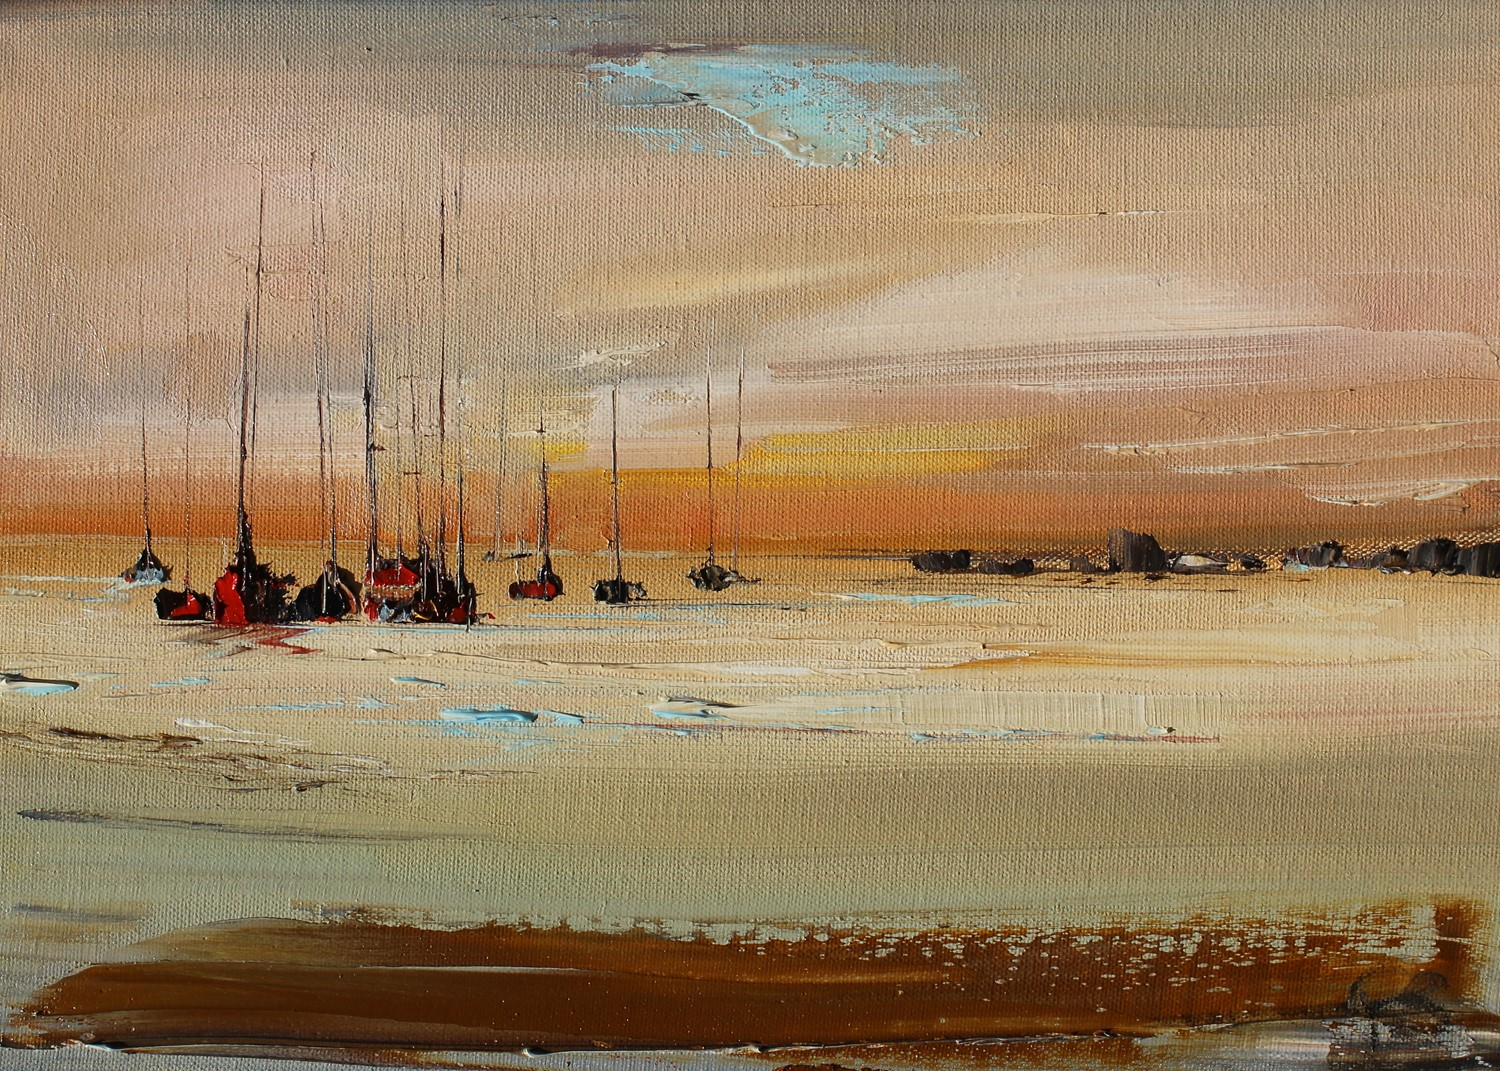 'From The Shore' by artist Rosanne Barr